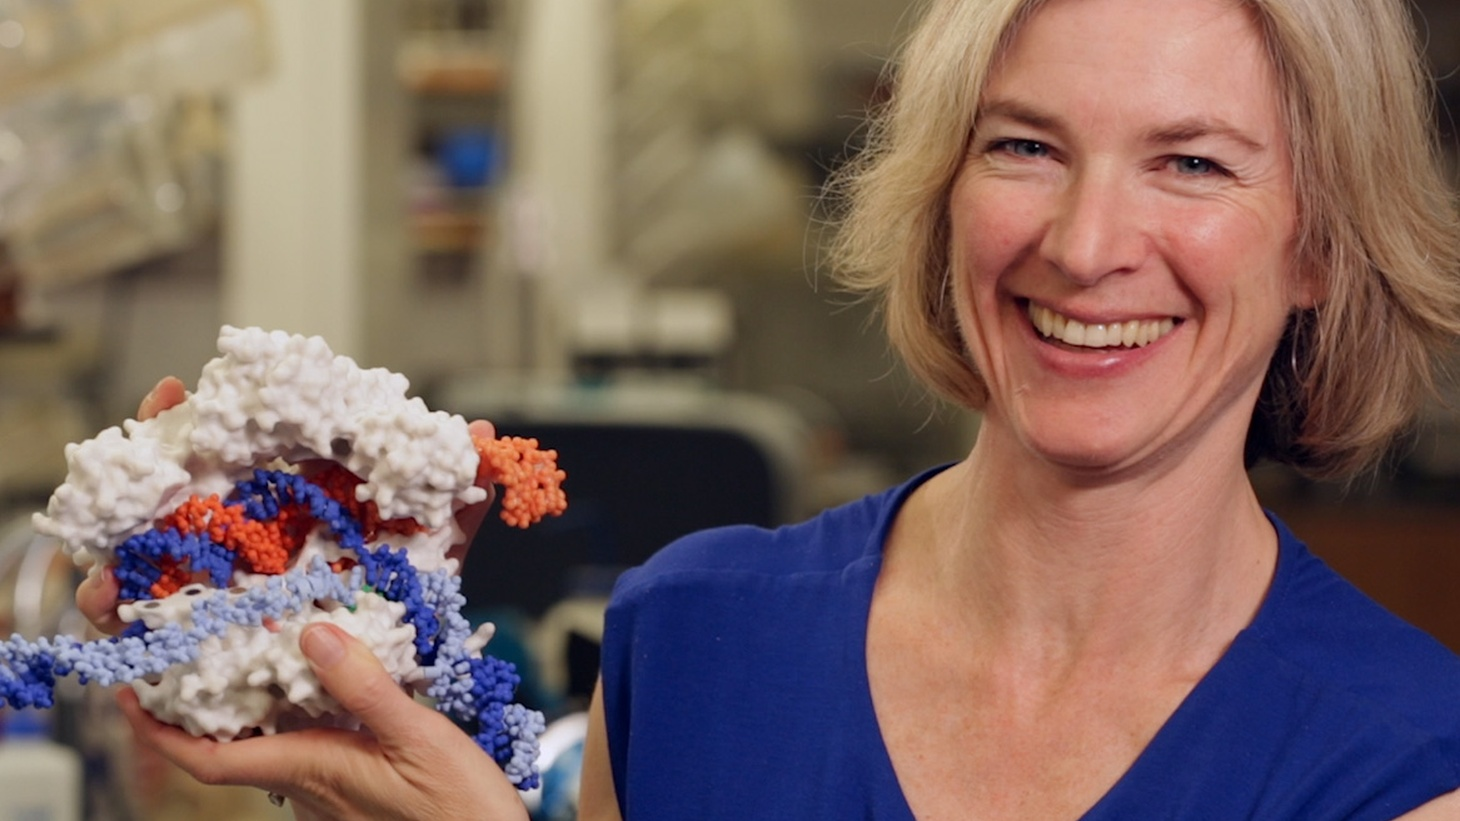 UC Berkeley biochemist Jennifer Doudna and her colleagues say they can edit any organism's DNA using an RNA-guided protein found in bacteria.